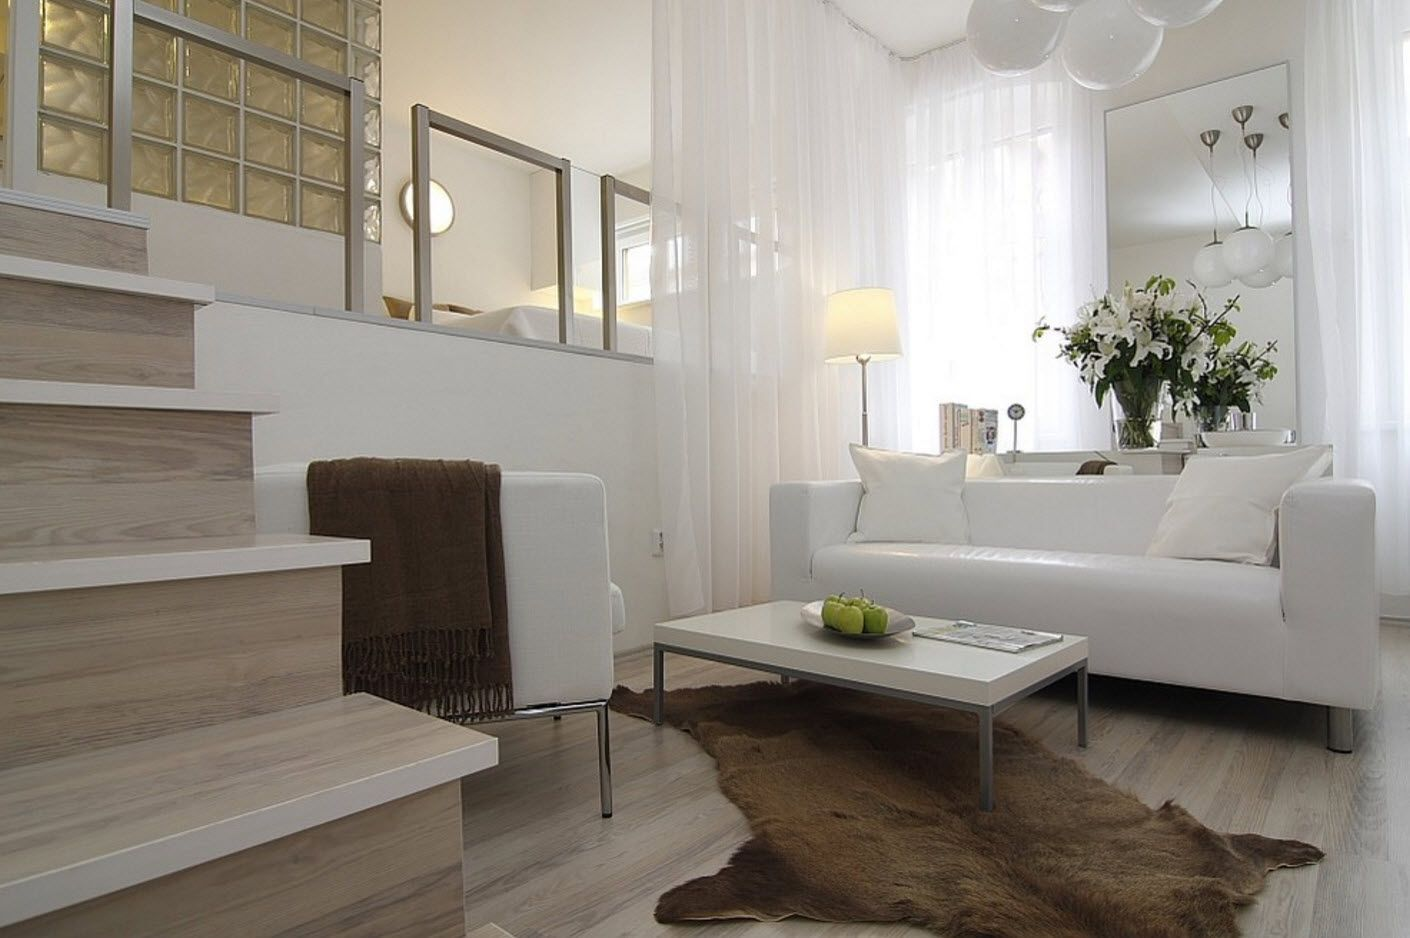 Multilevel studio apartment with living room and open layout of bedroom finished in restrained Modern and Scandi styles